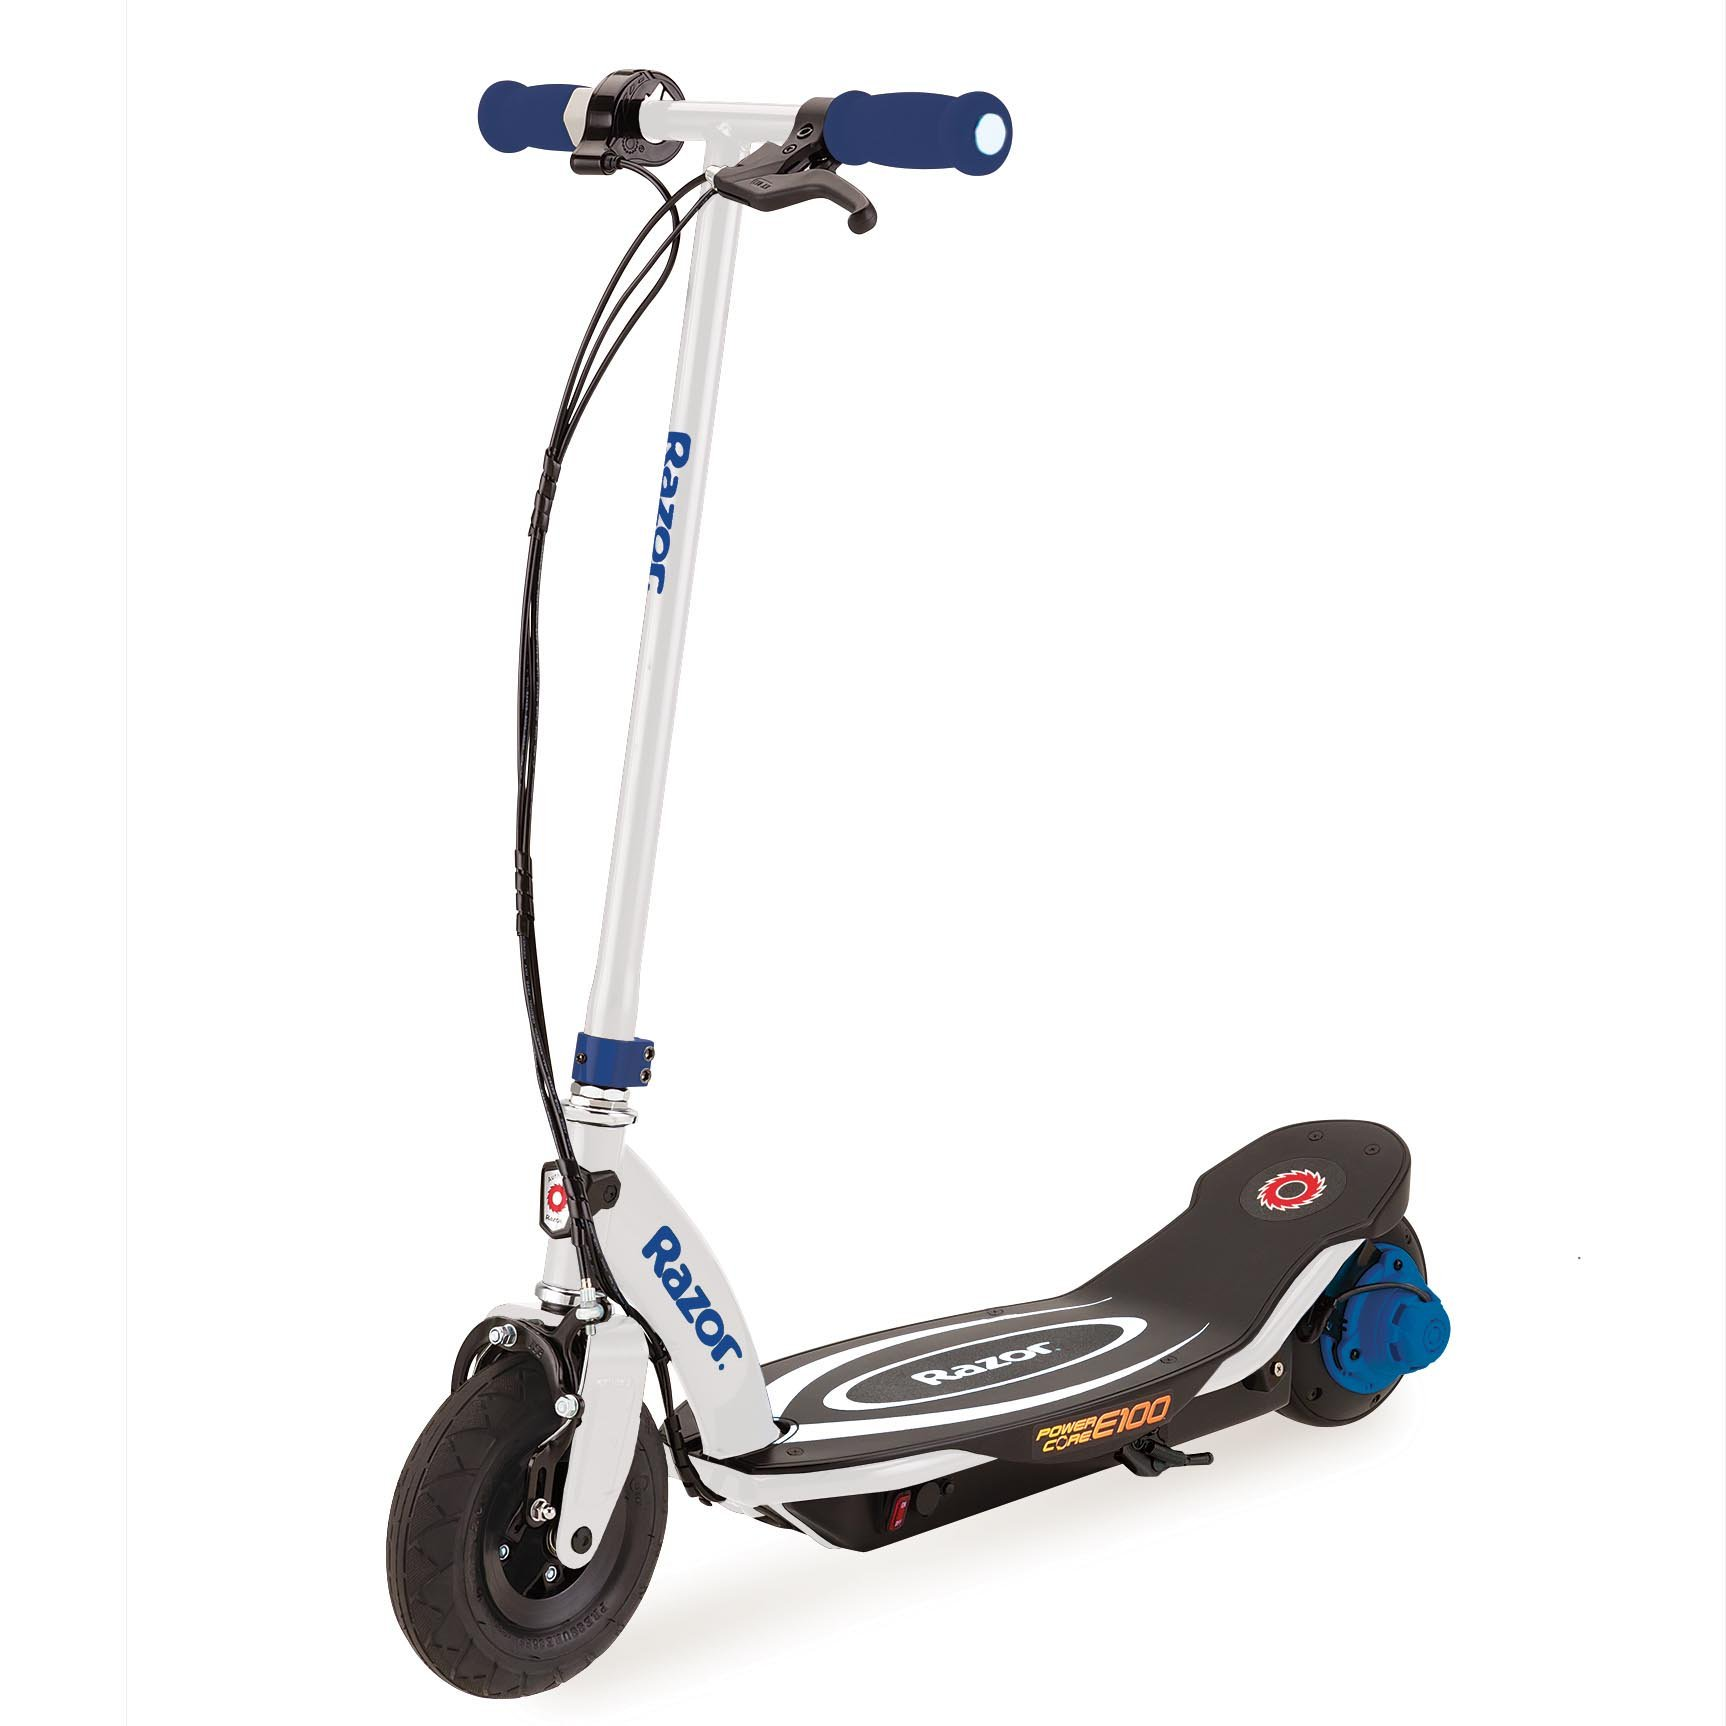 Razor Power Core E100 Electric Scooter, Blue by Razor